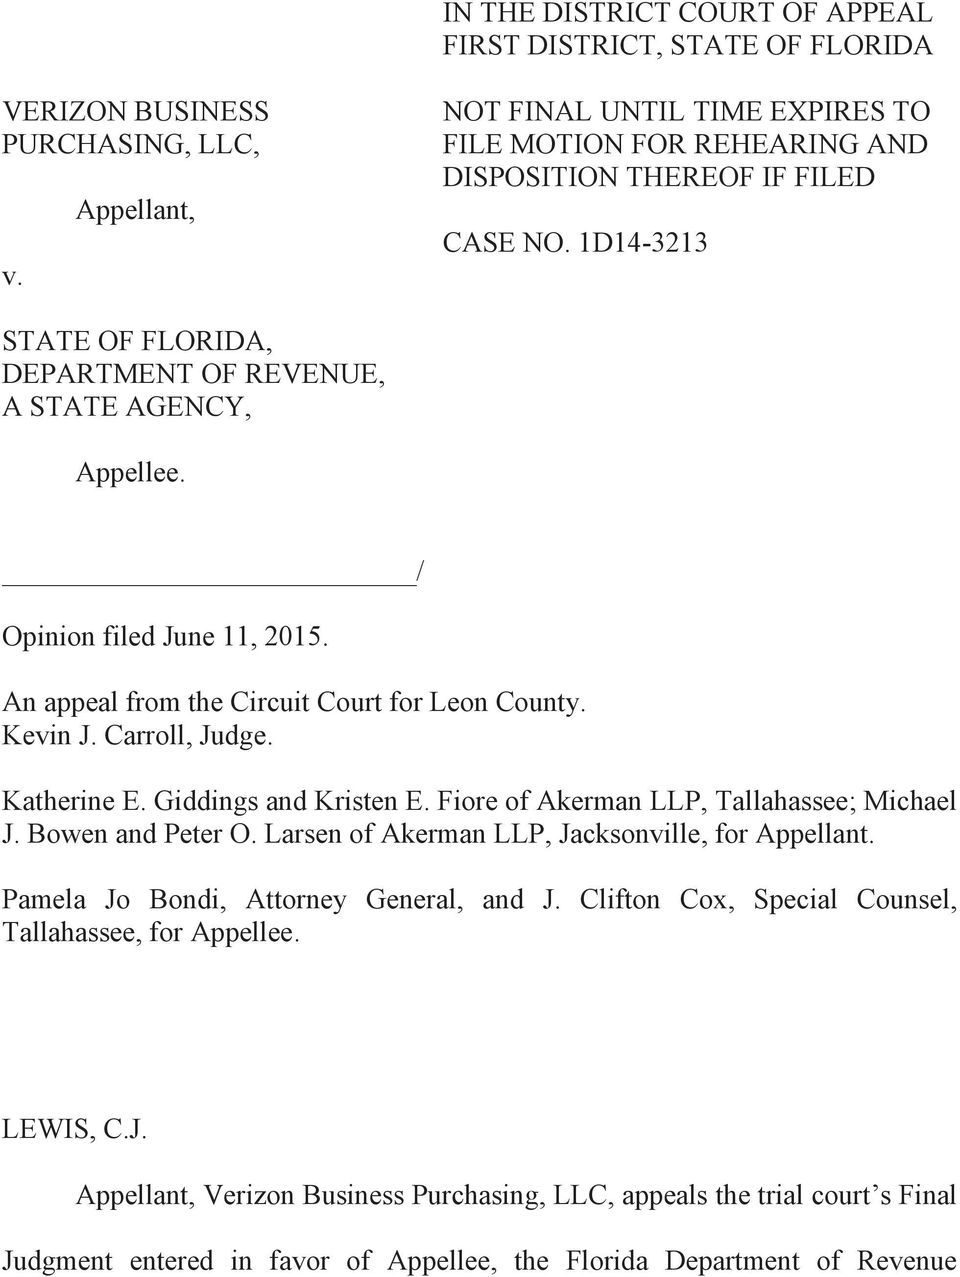 / Opinion filed June 11, 2015. An appeal from the Circuit Court for Leon County. Kevin J. Carroll, Judge. Katherine E. Giddings and Kristen E. Fiore of Akerman LLP, Tallahassee; Michael J.